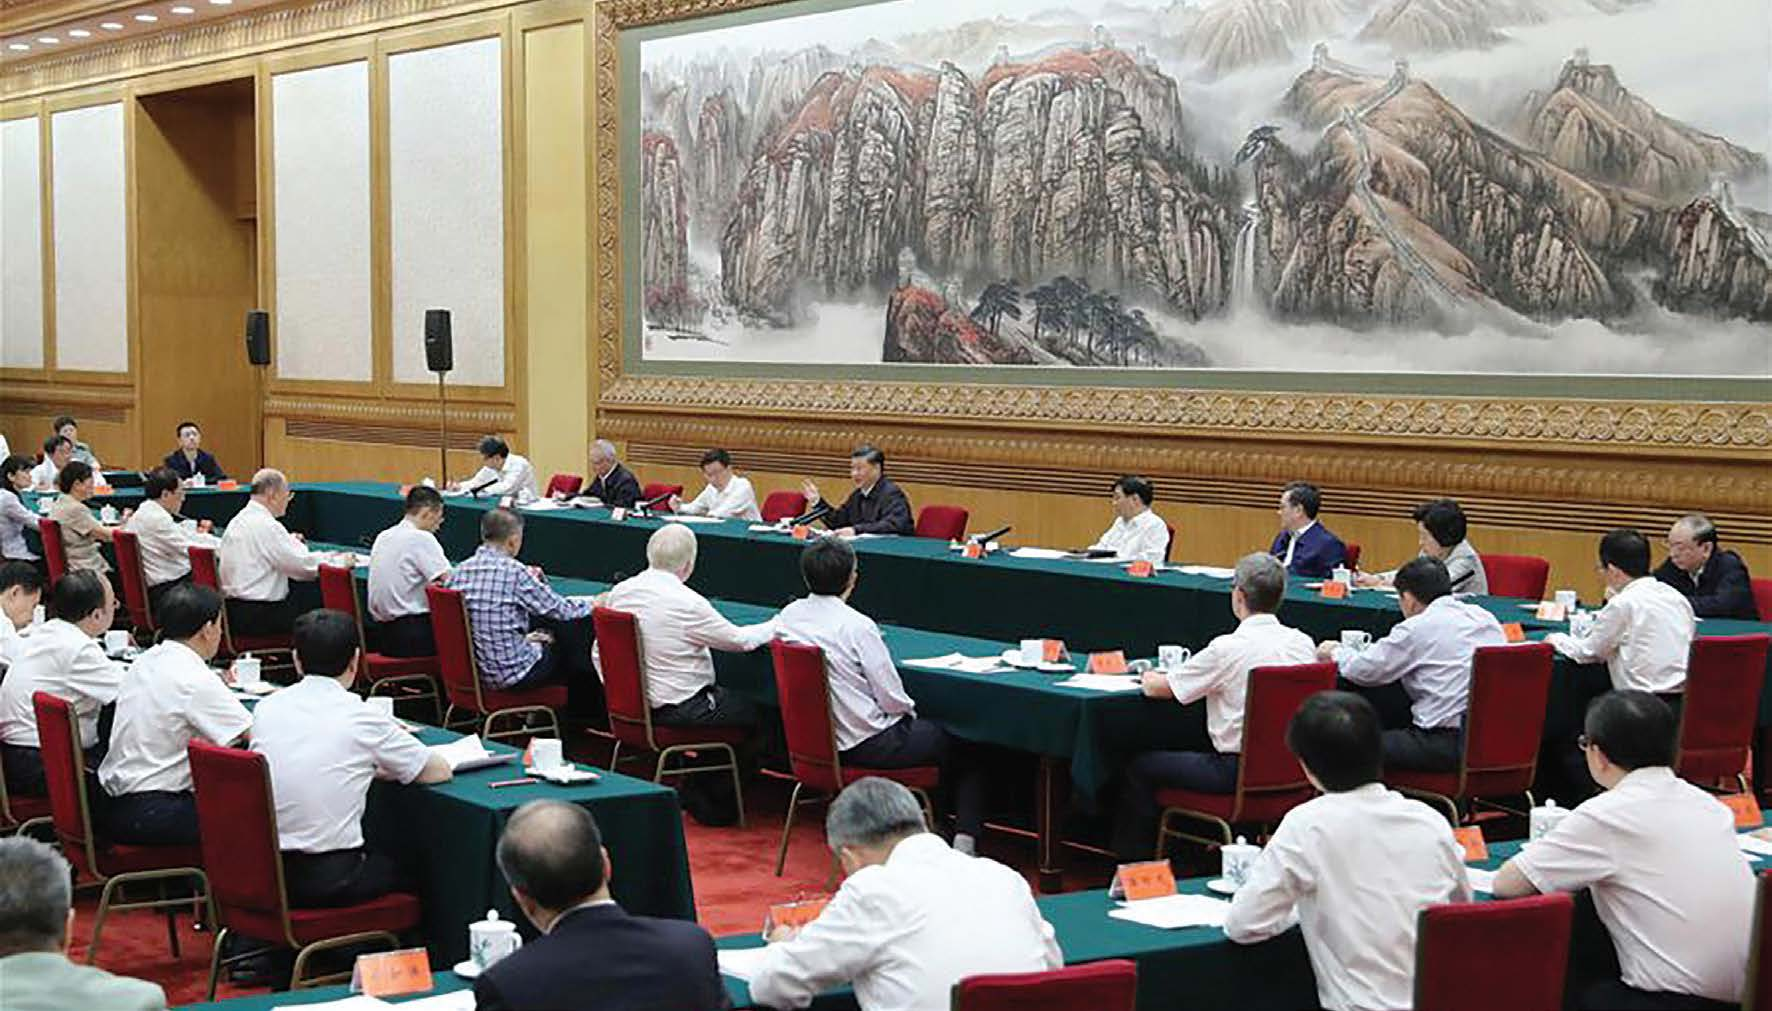 Chinese President Xi Jinping, chairs symposium attended by scientists in Beijing, capital of China, Sept. 11, 2020 (Yao Dawei / Xinhua).